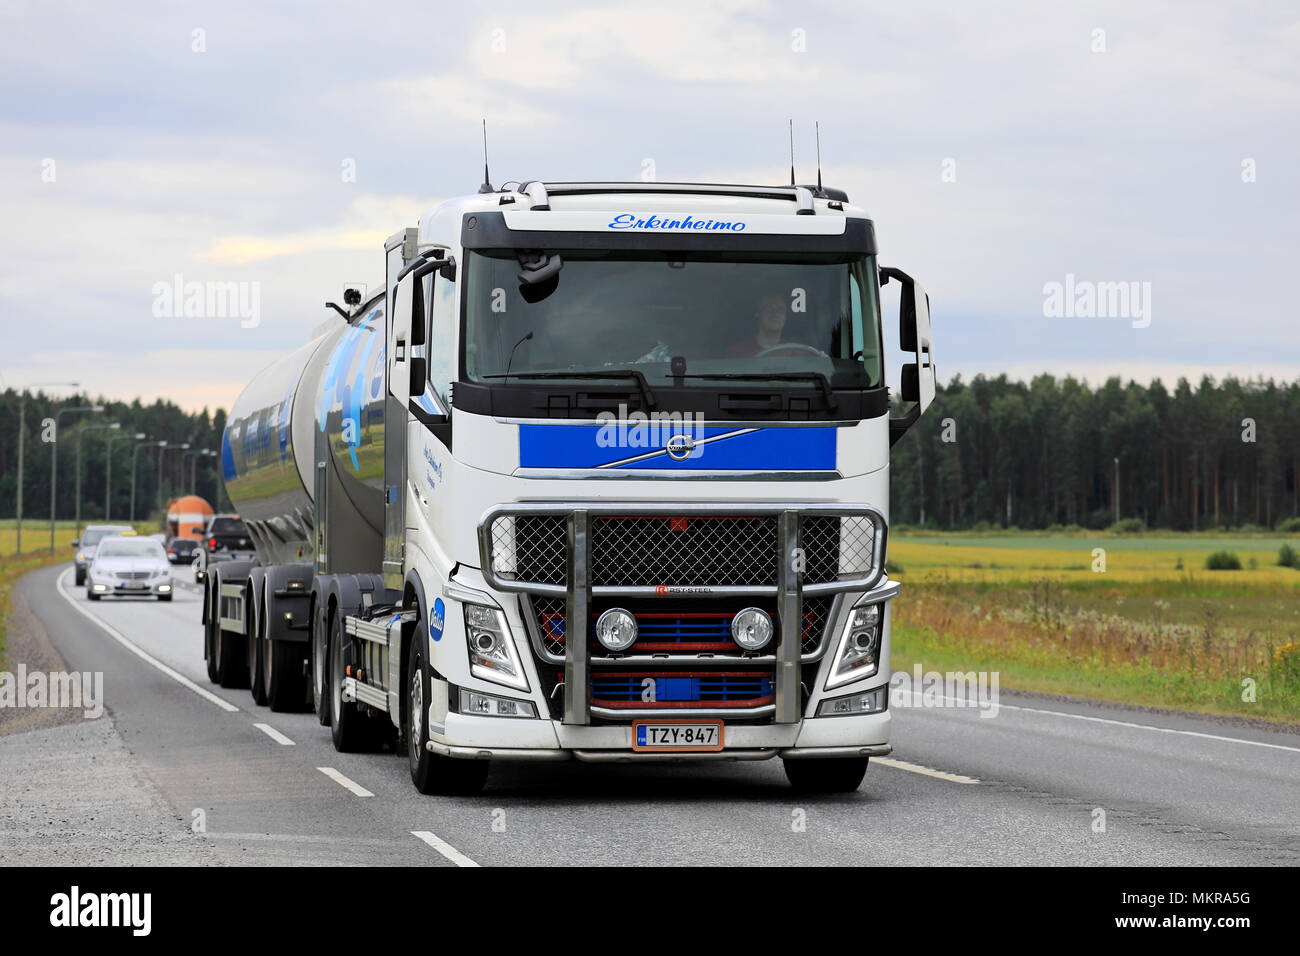 volvo fh 500 stock photos volvo fh 500 stock images alamy. Black Bedroom Furniture Sets. Home Design Ideas